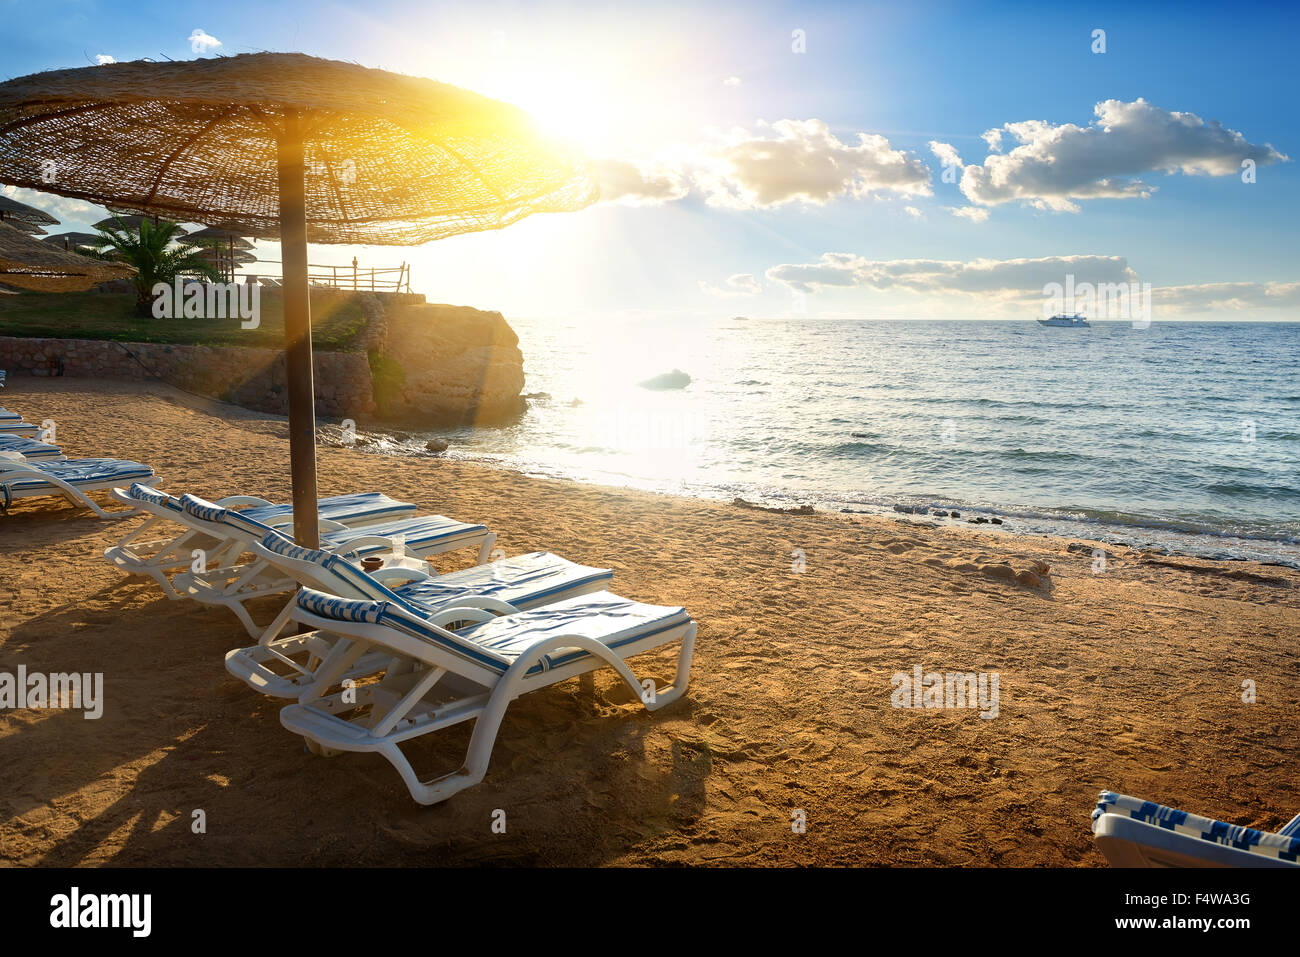 Chaise-longues on a beach of the Red sea - Stock Image